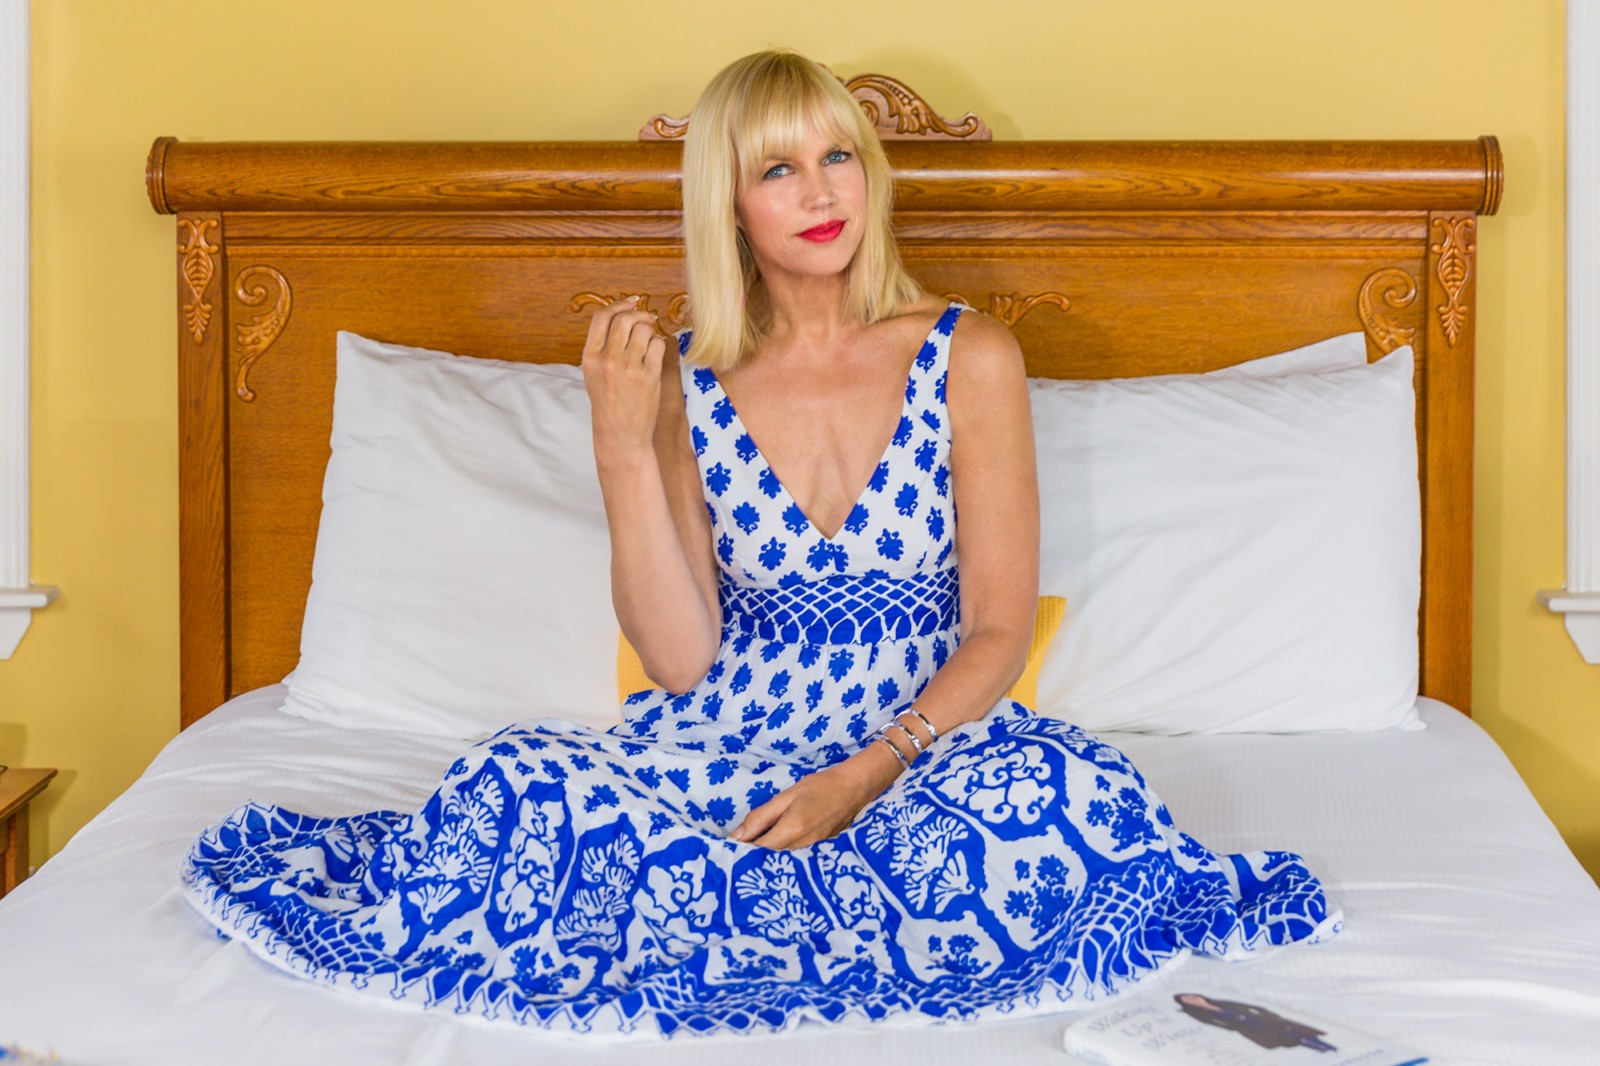 CatherineGraceO Sitting Essex Street Inn Bed